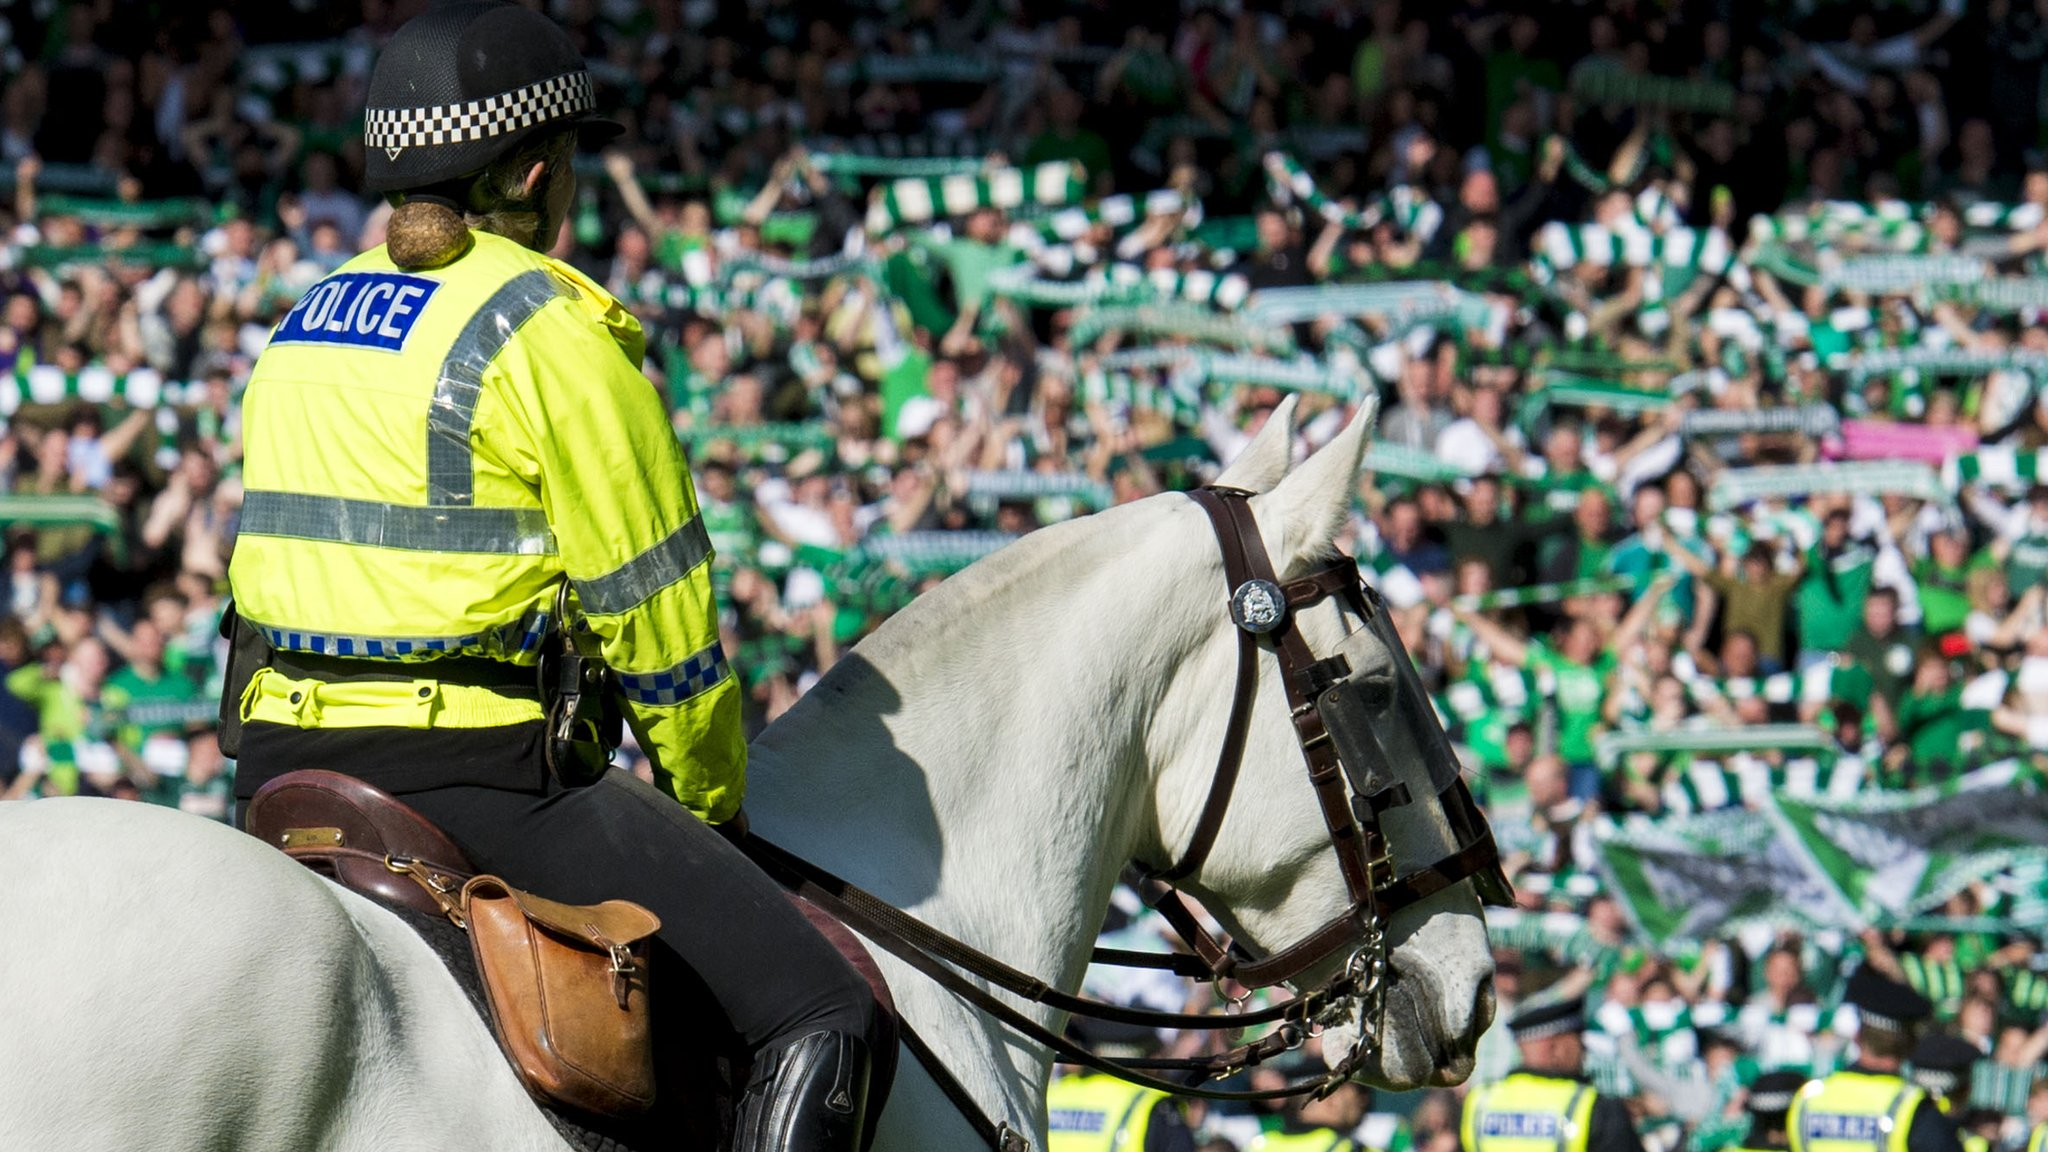 Scottish government tells authorities to act on crowd trouble